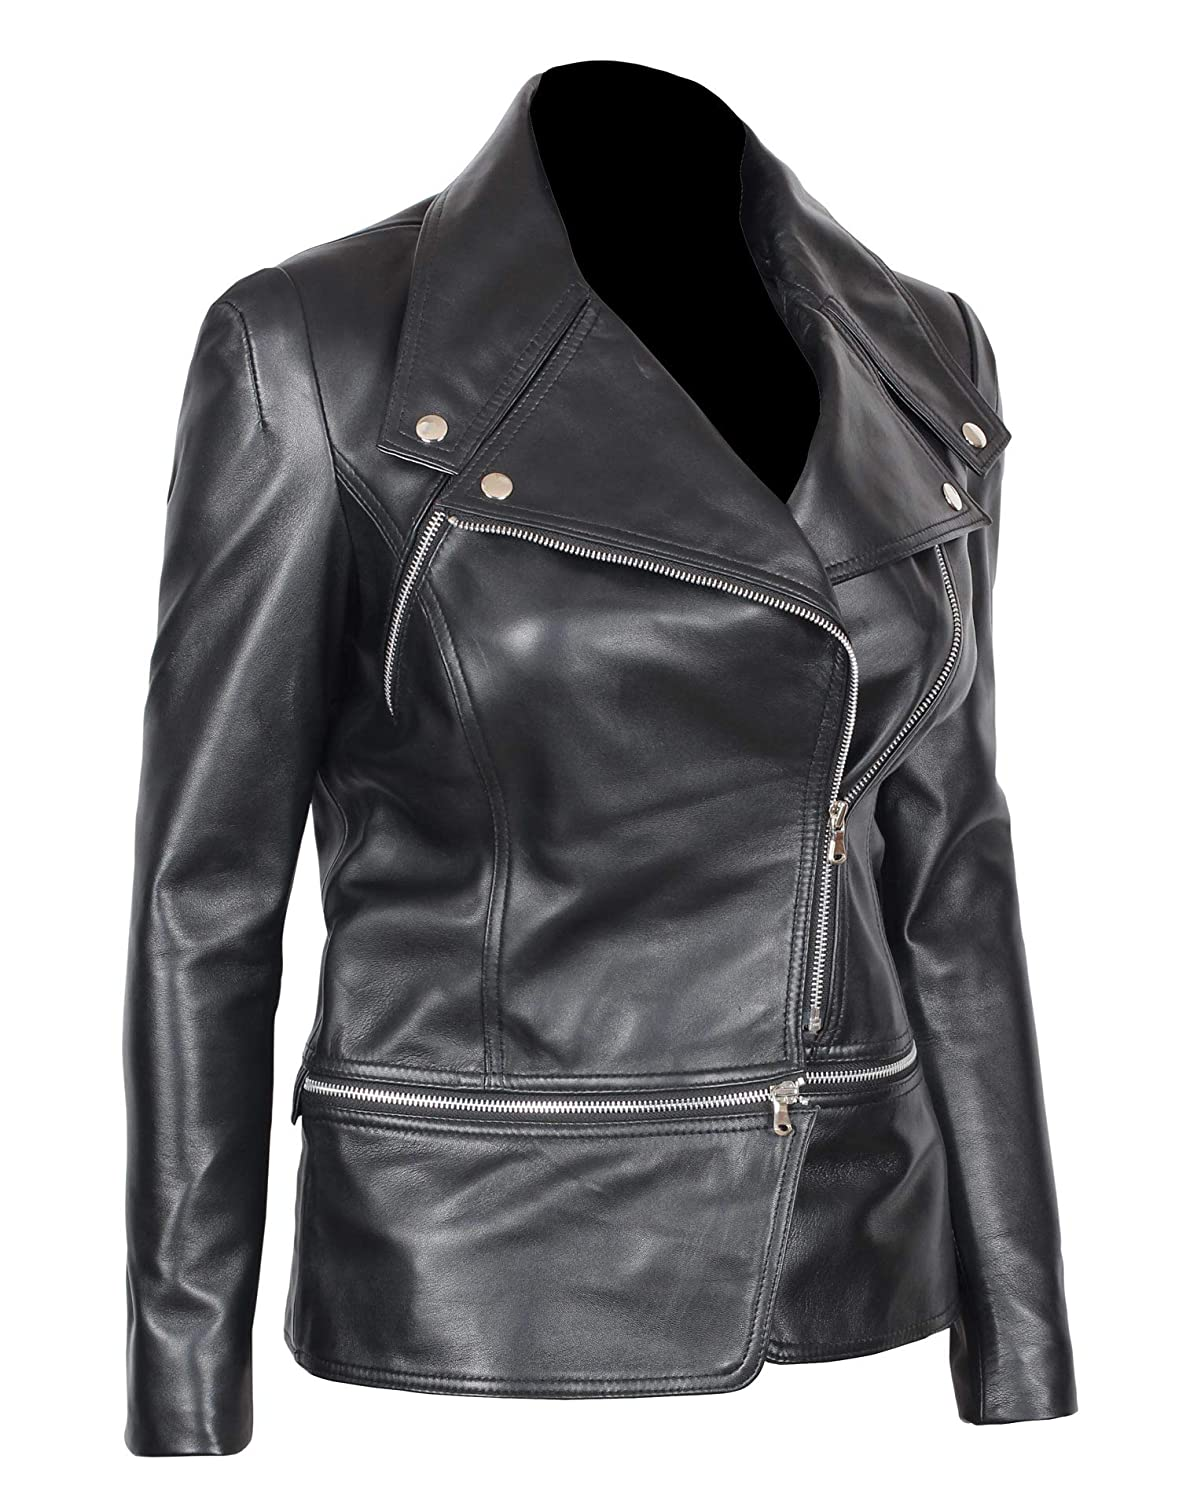 d8d402649526 Womens Black Leather Jacket - Genuine Lambskin Chocolate Brown Leather  Jackets for Women at Amazon Women s Coats Shop